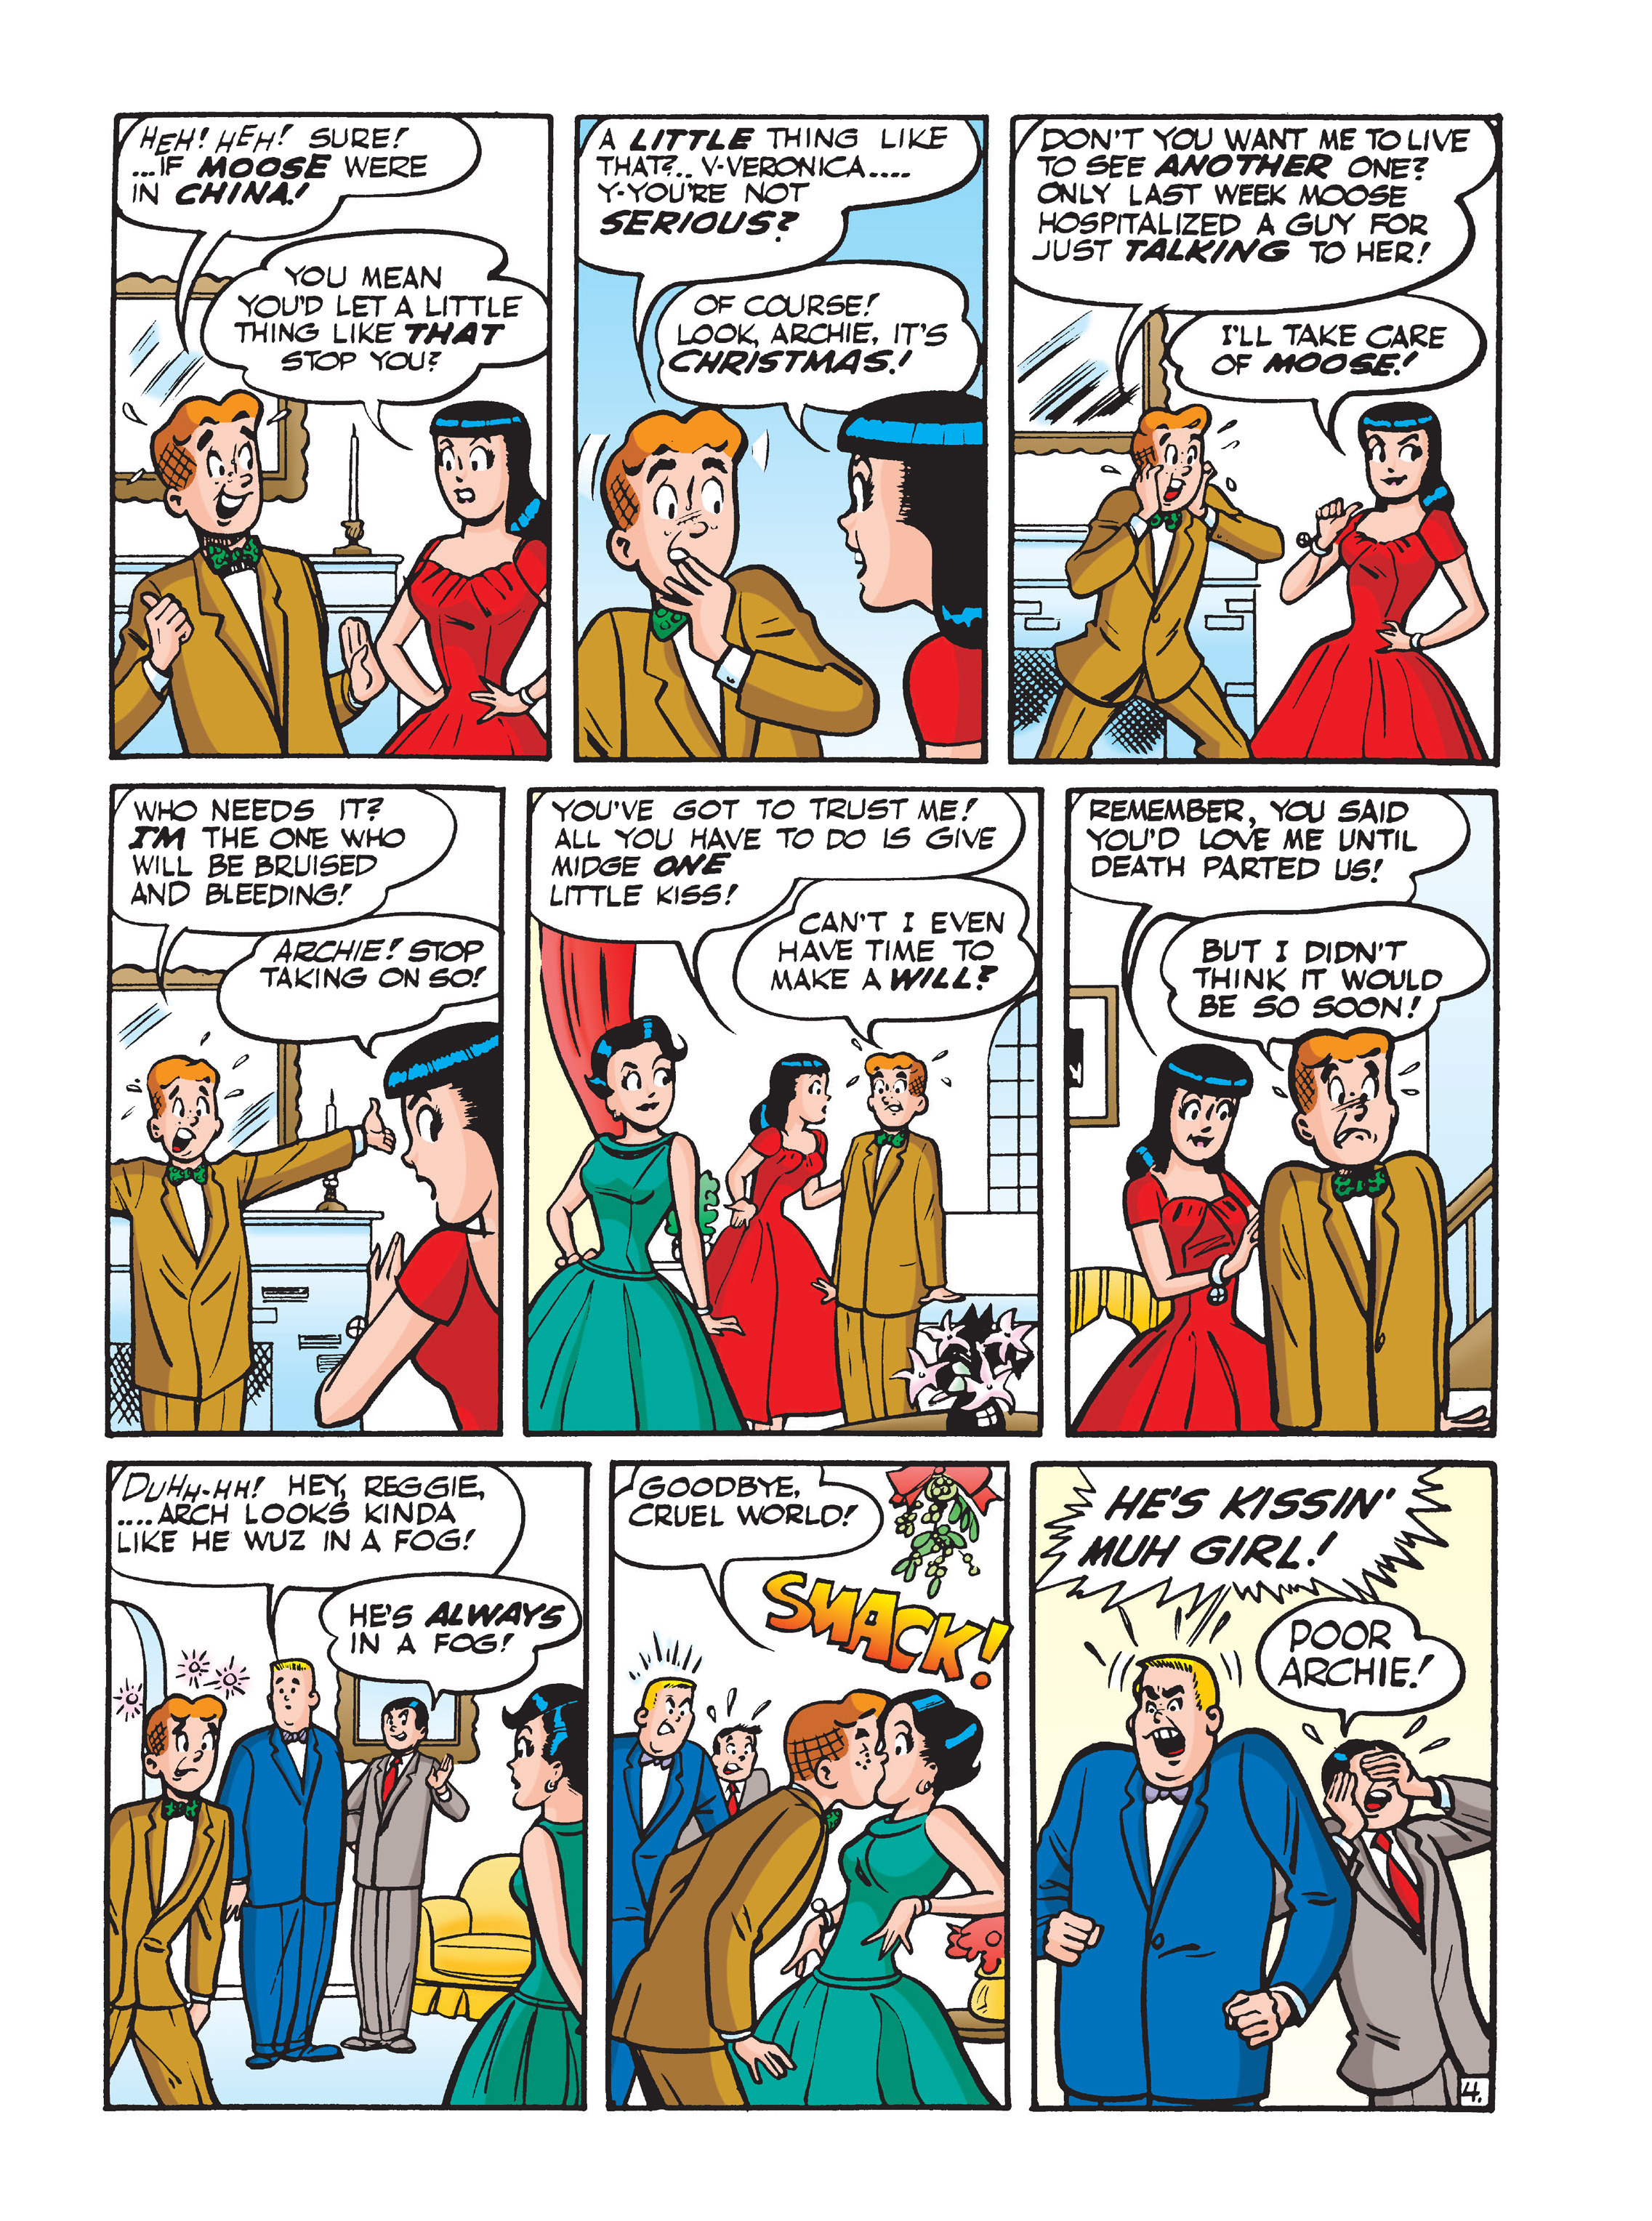 Read online Archie Comics Super Special comic -  Issue #7 - 6